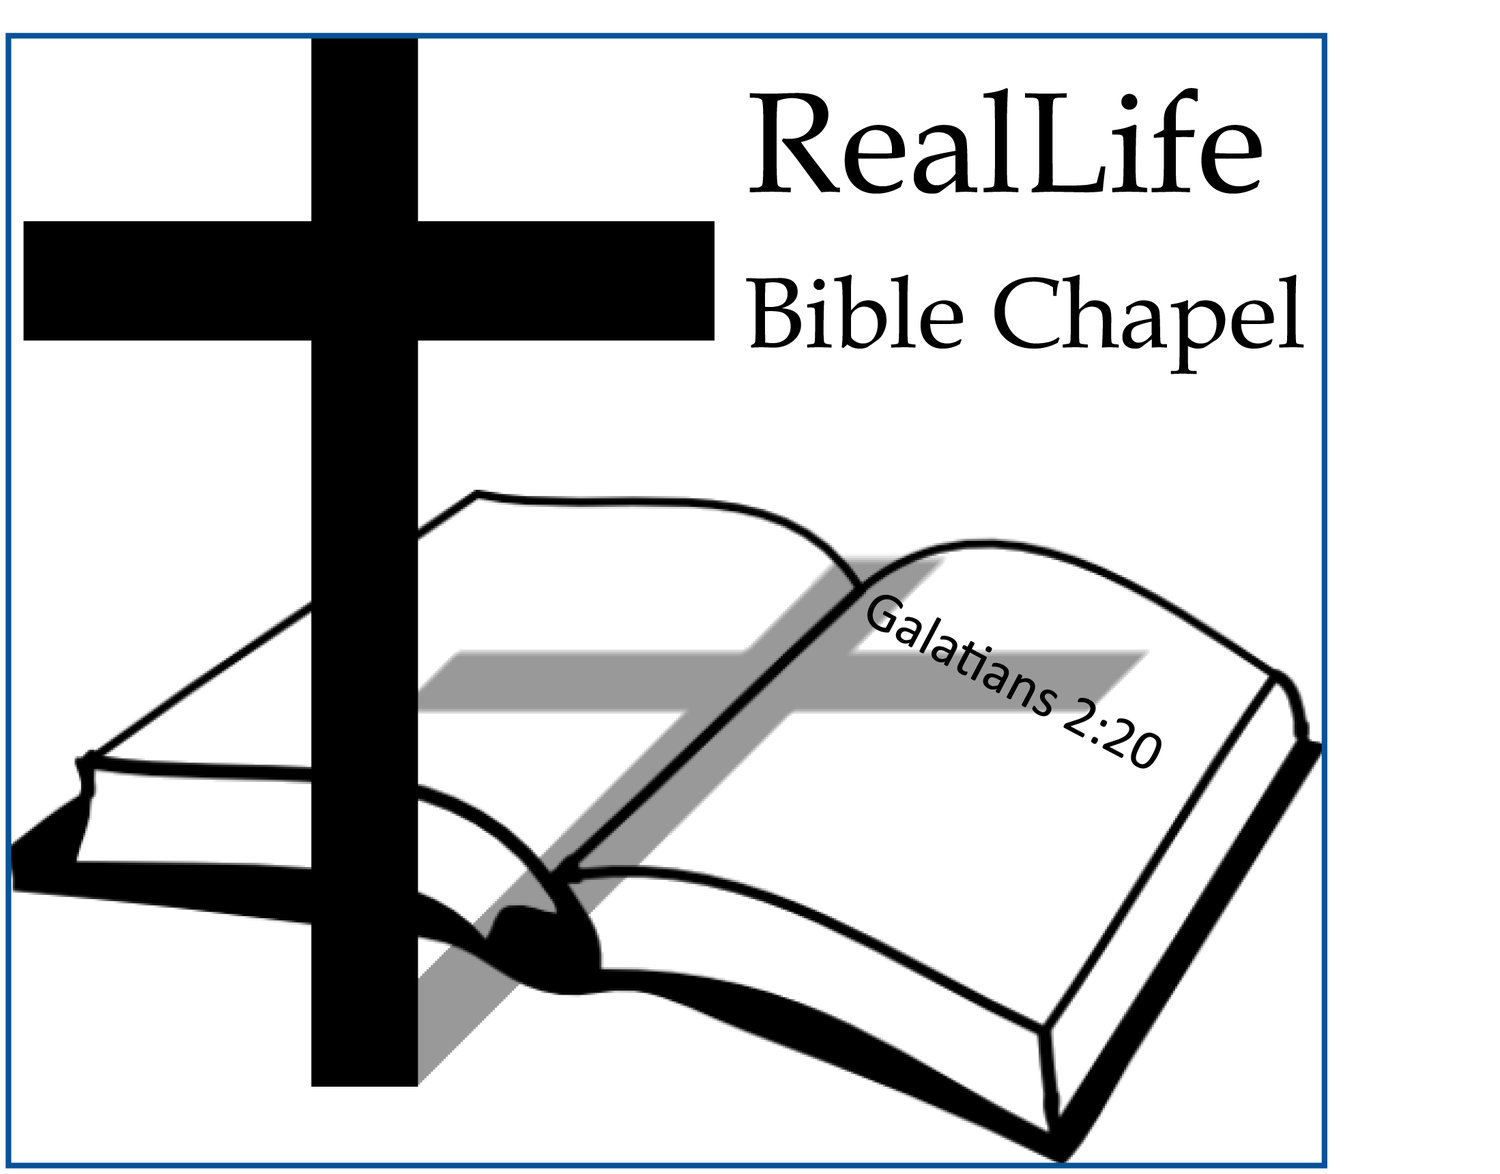 RealLife Bible Chapel